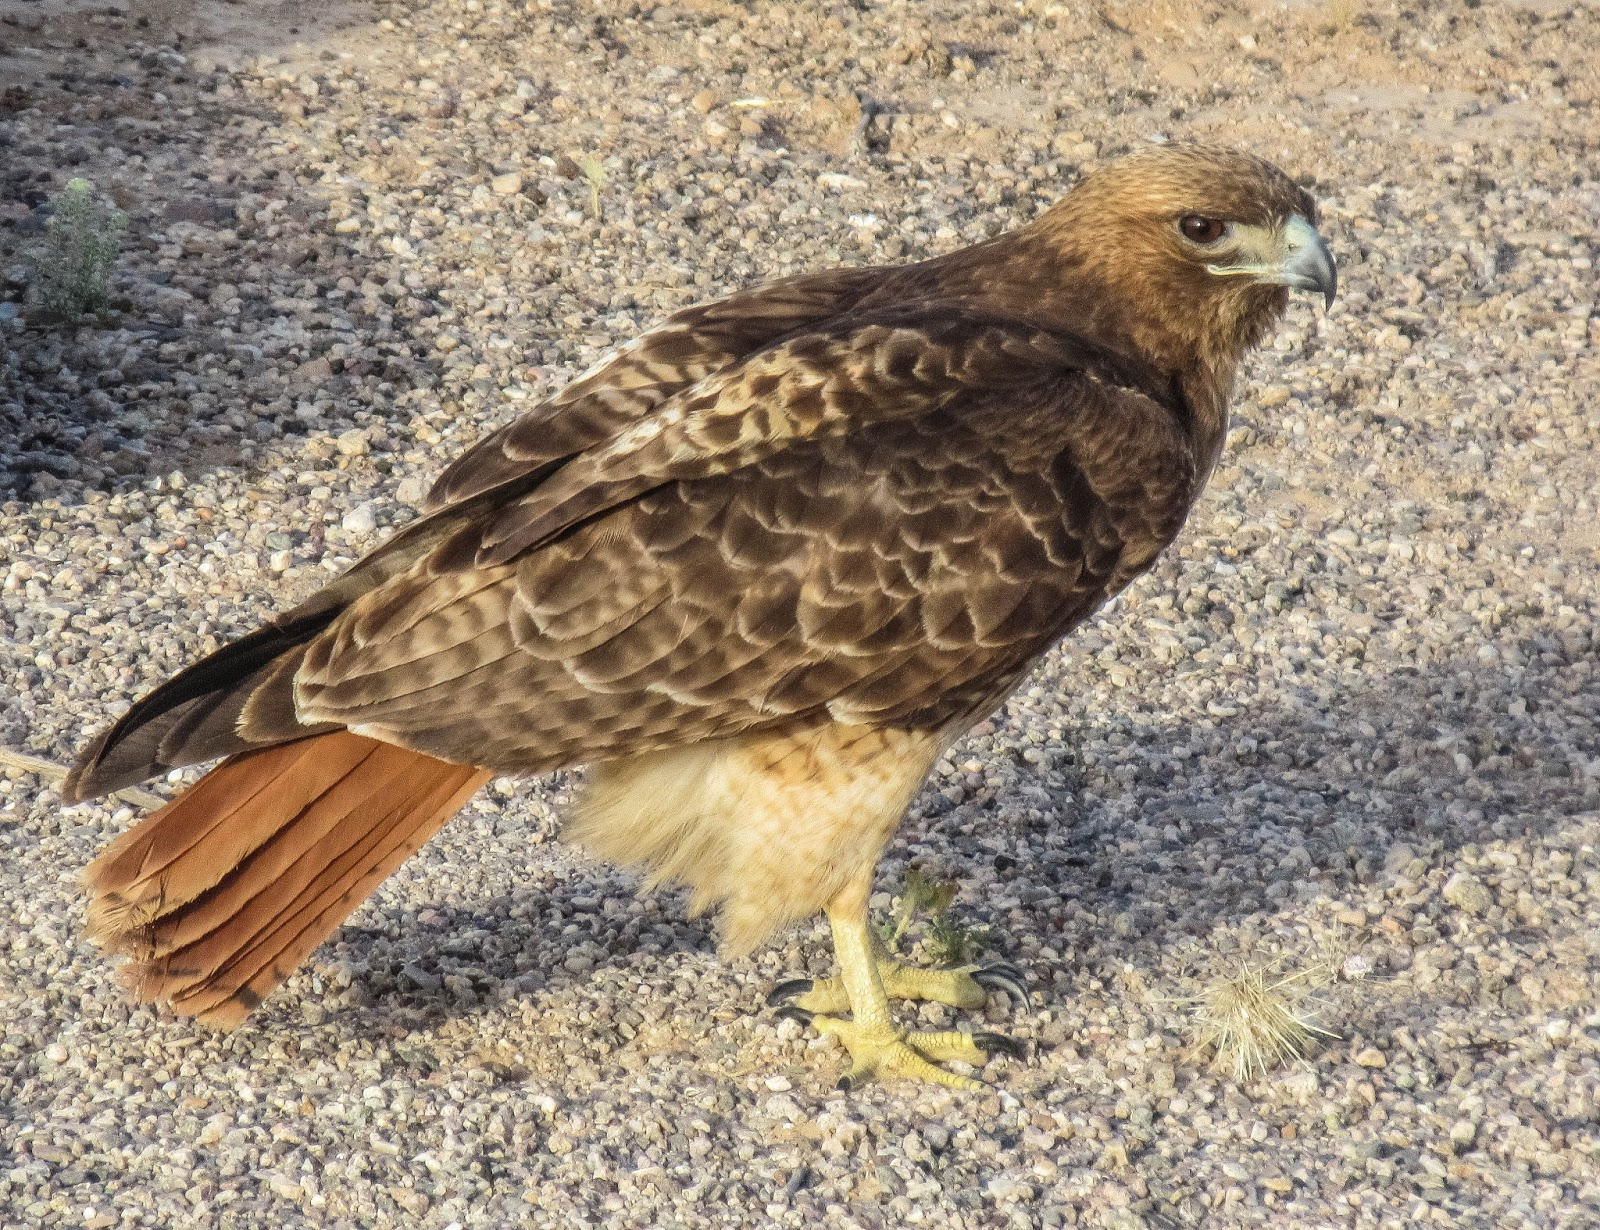 Cannundrums western red tailed hawk sonora mexico - Red tailed hawk wallpaper ...